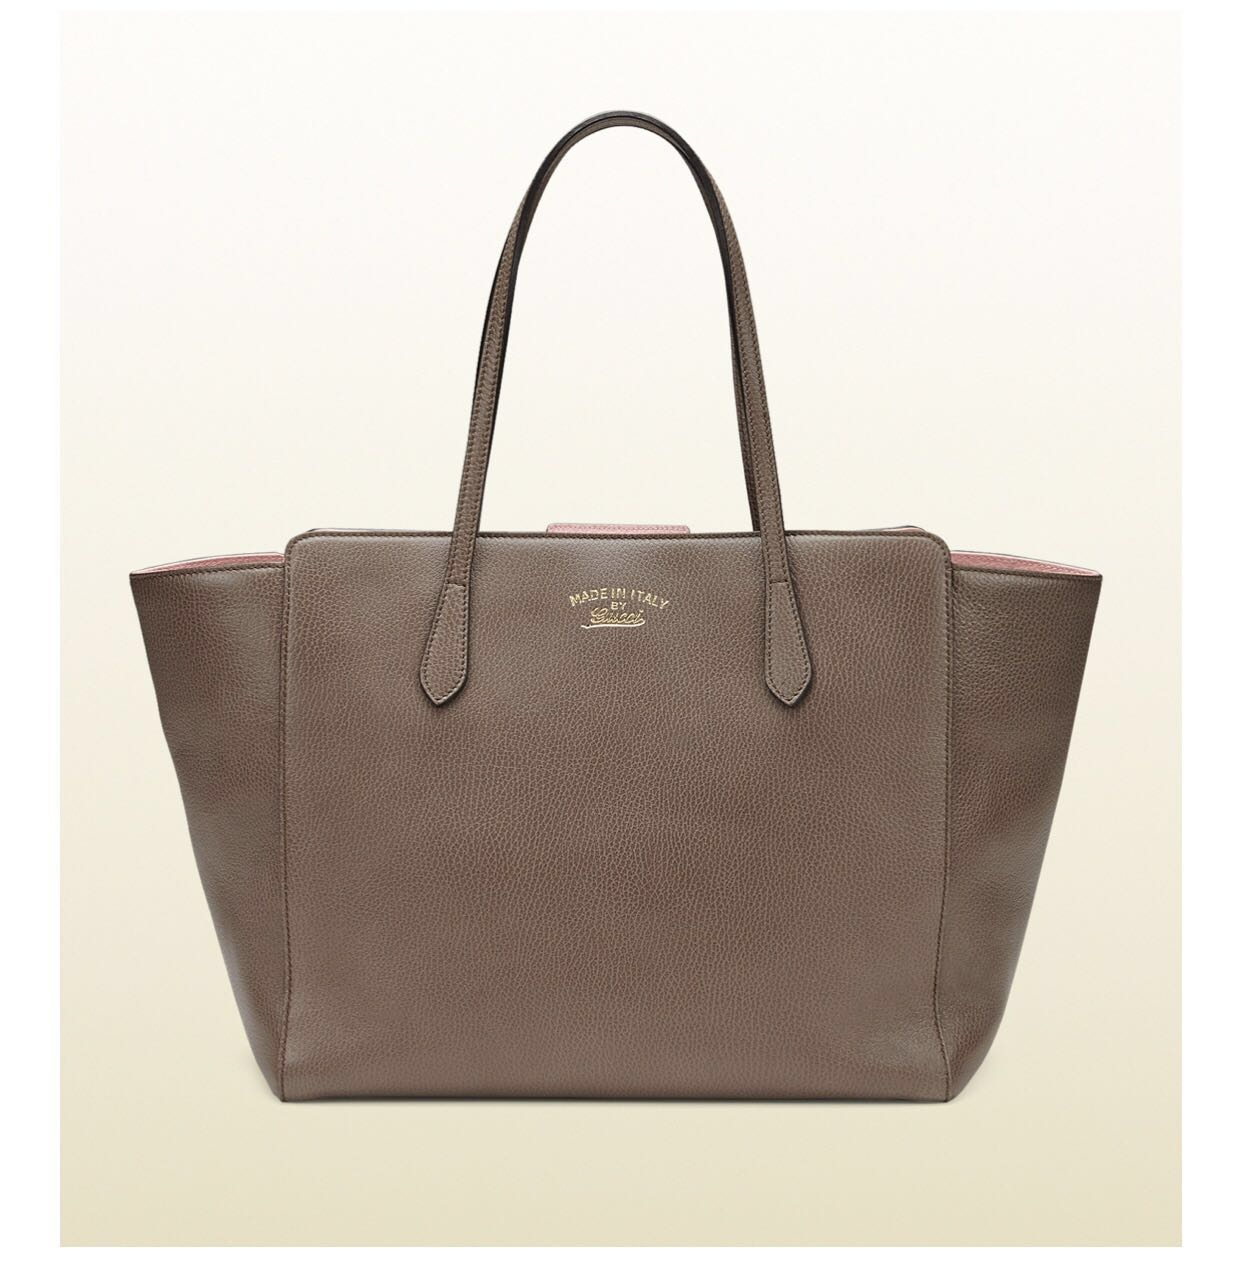 6c35a57b036a11 Authentic Gucci Swing Tote Medium, Women's Fashion, Bags & Wallets ...